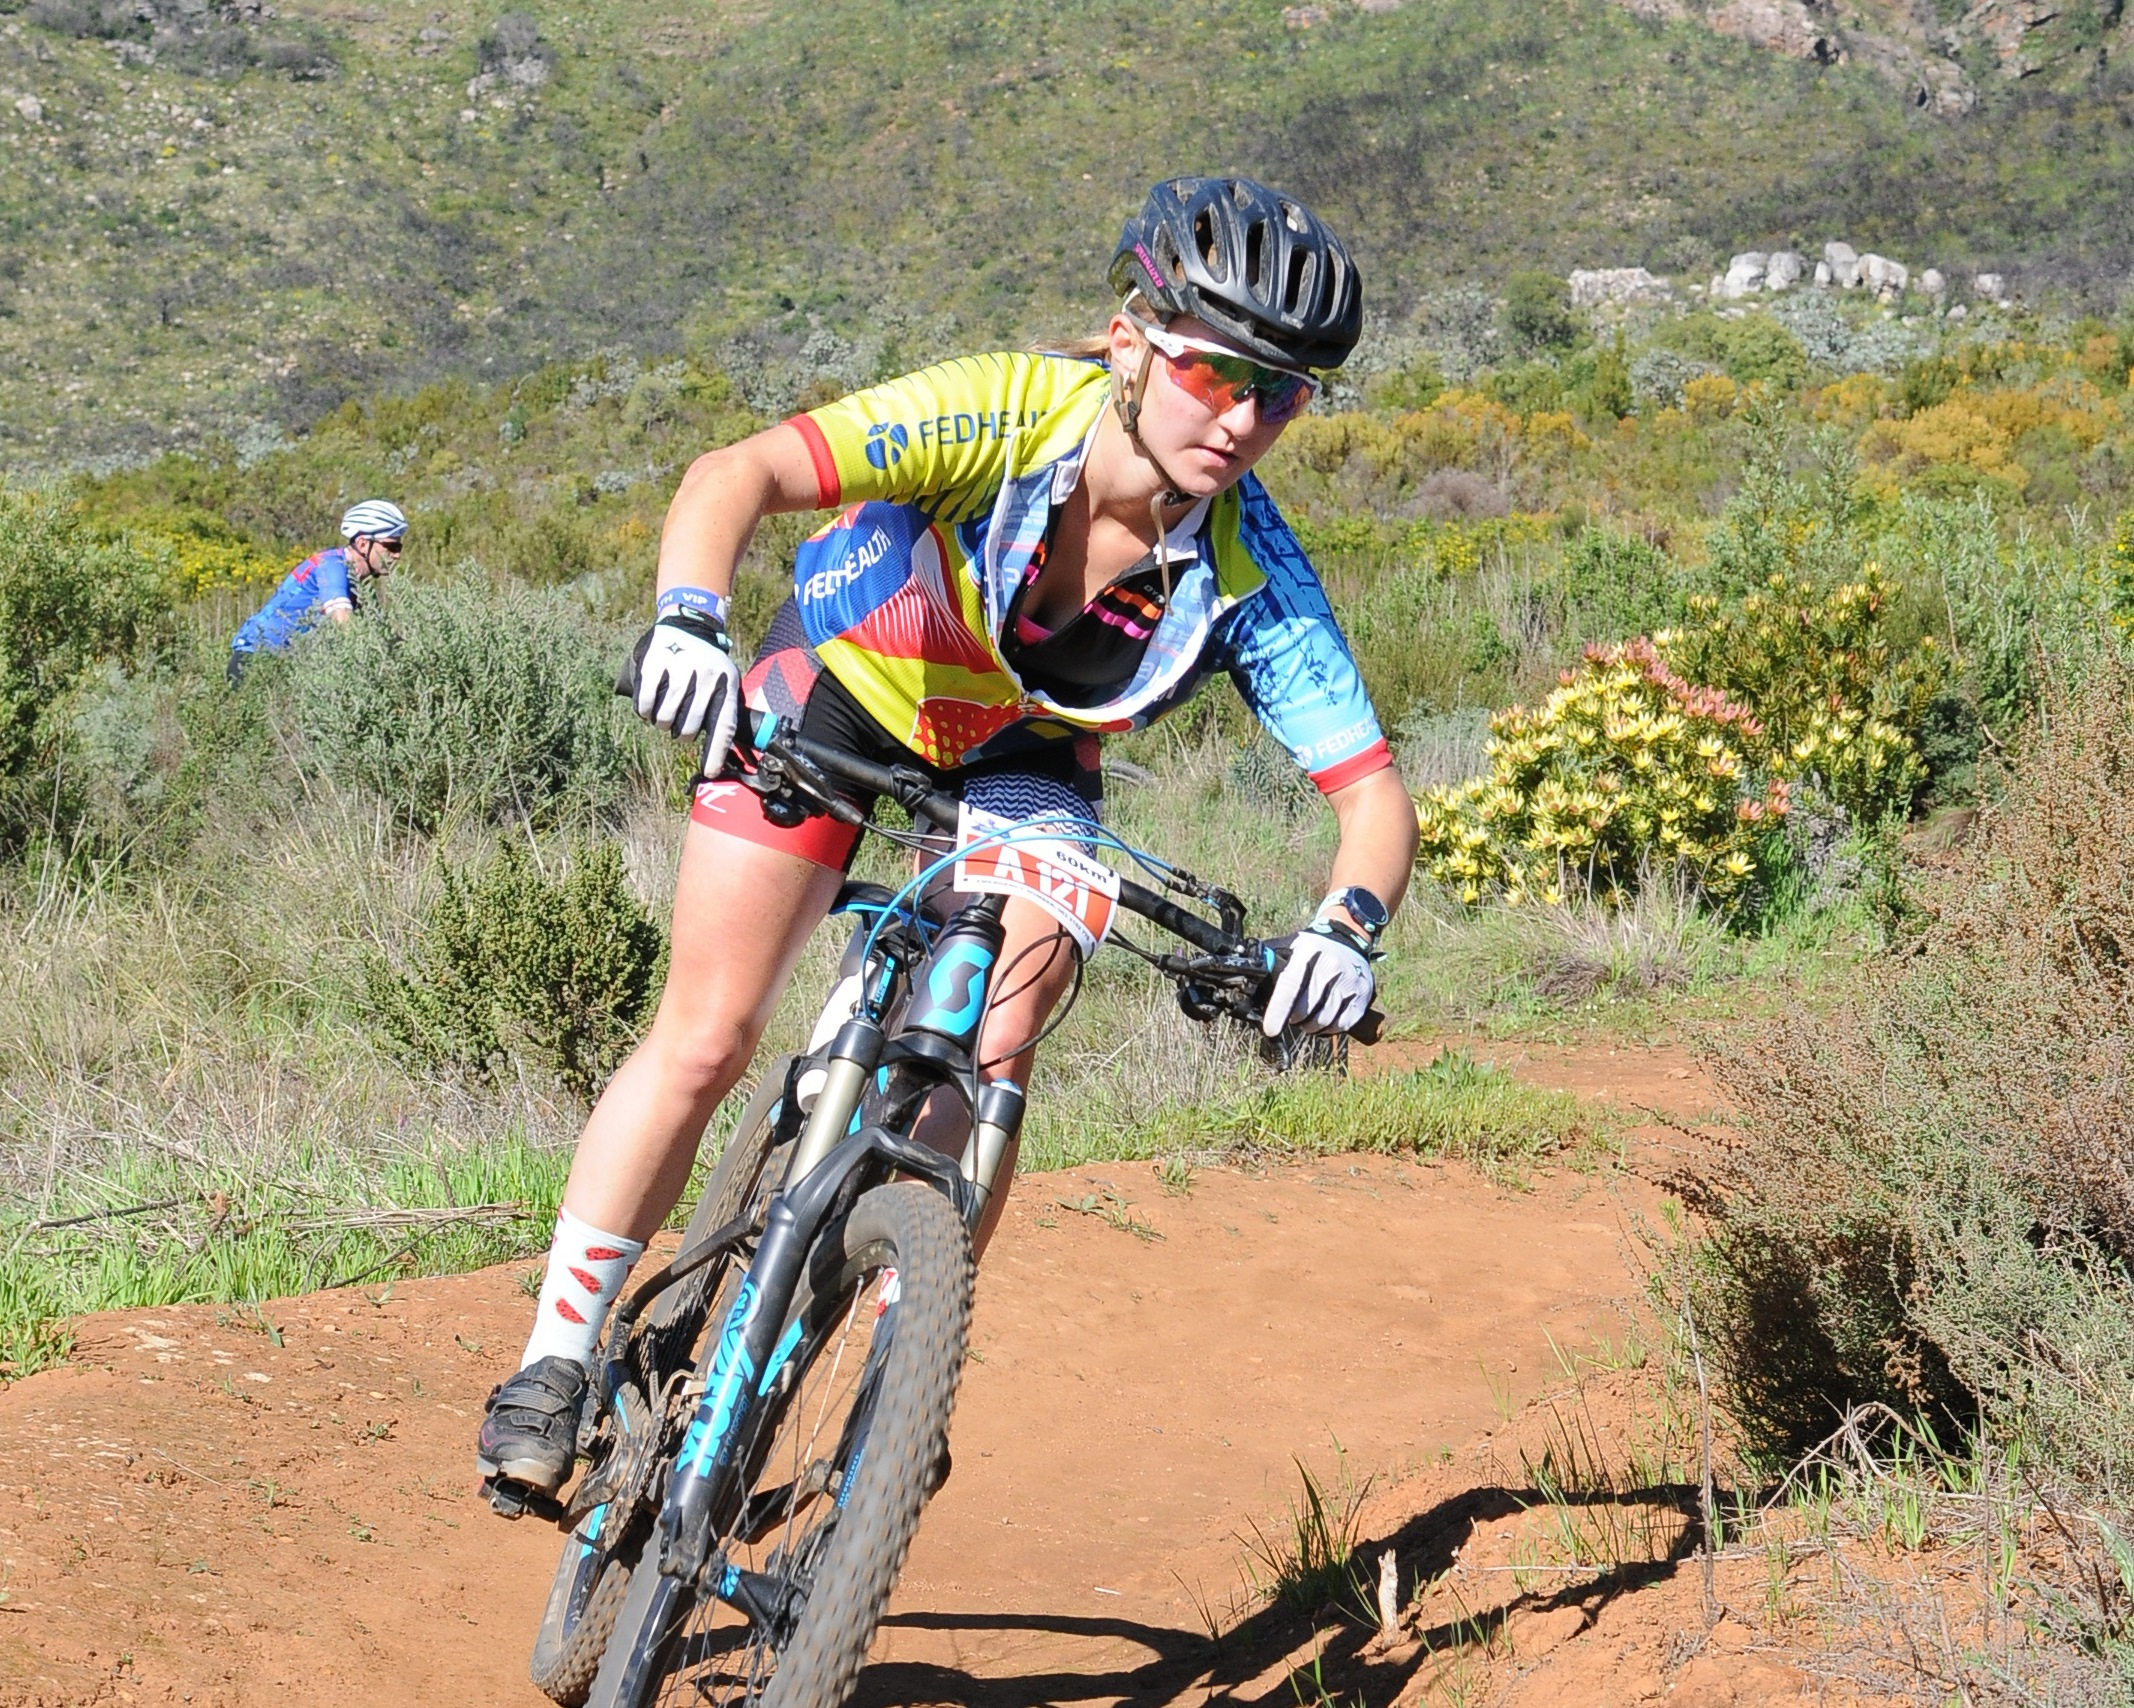 Natia Van Heerden in action at the 2017 Fedhealth MTB Challenge.  Photo Credit:  Jetline Action Photo